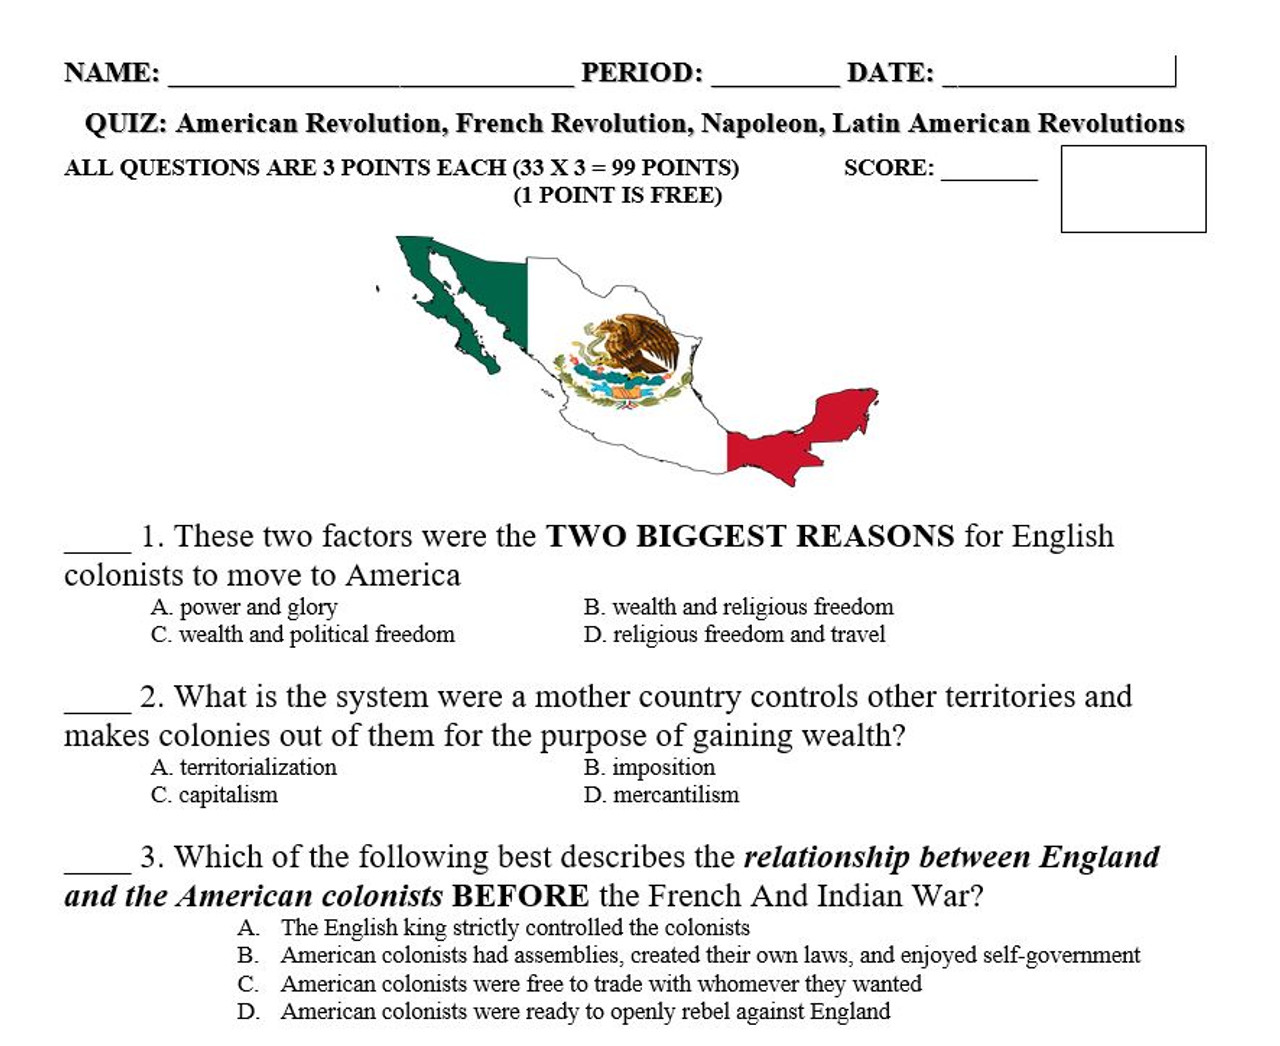 American, French and Latin American Revolutions Quiz